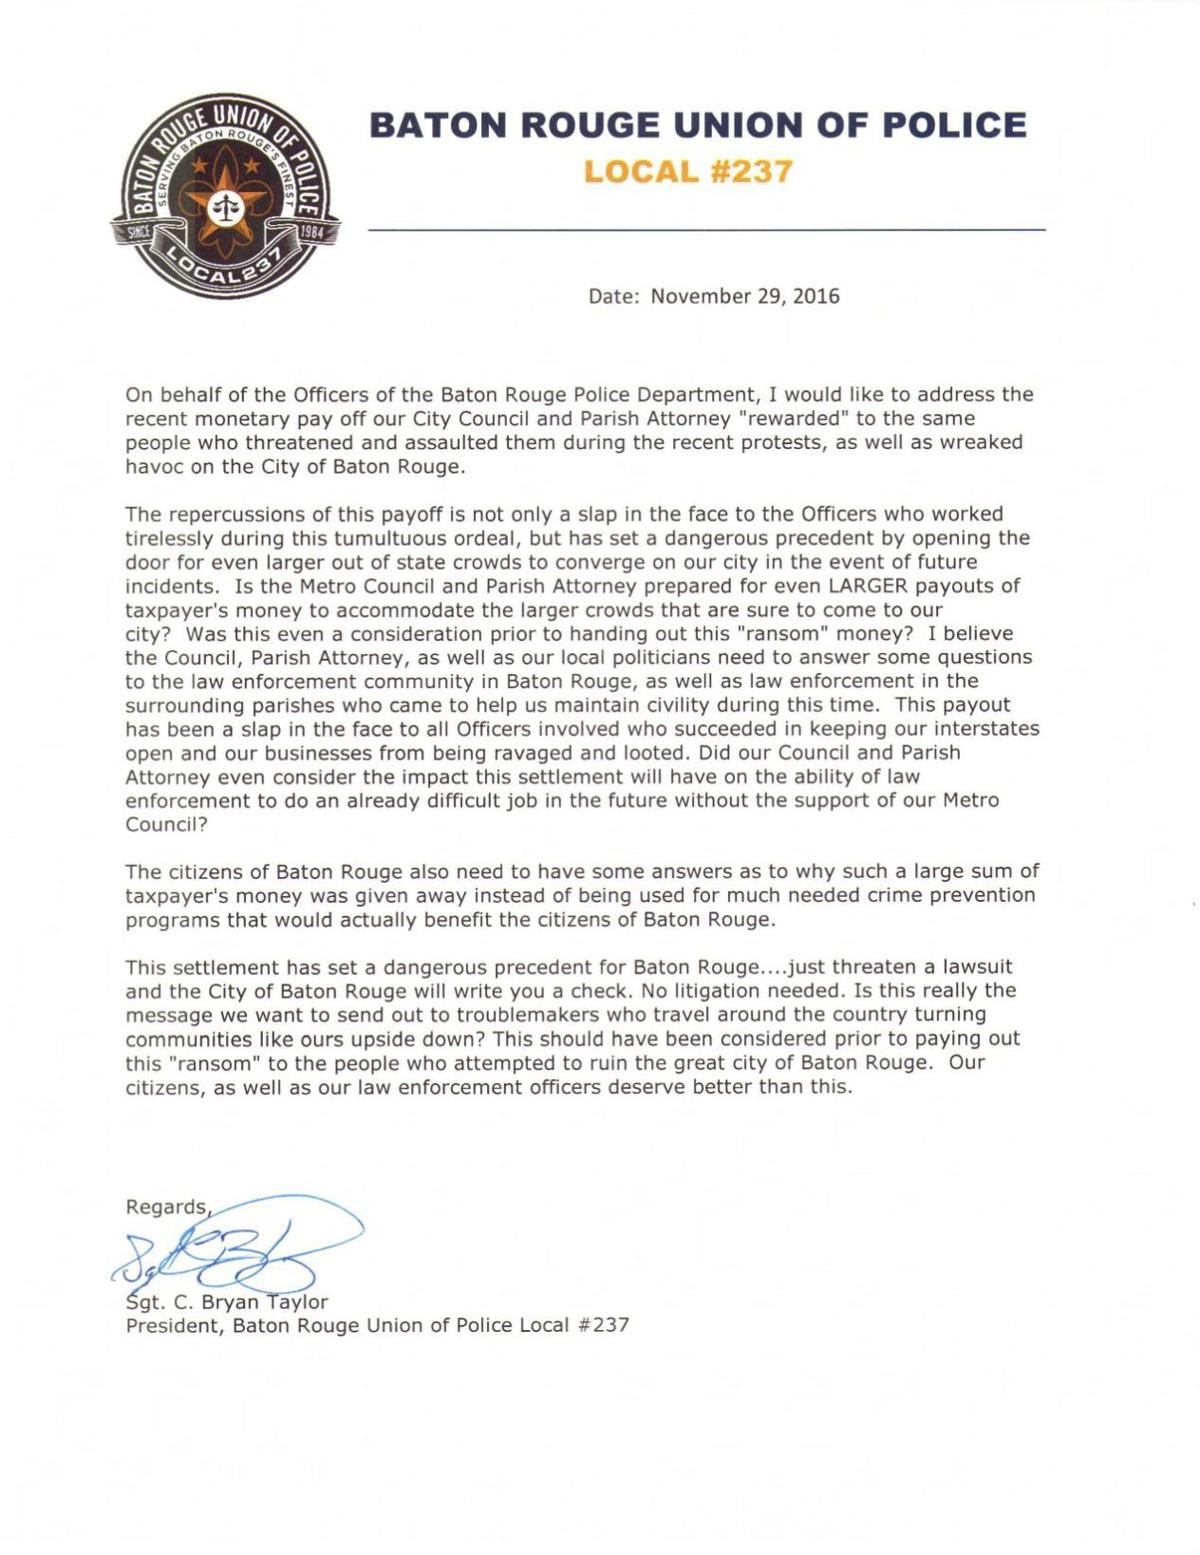 BR Union of Police letter